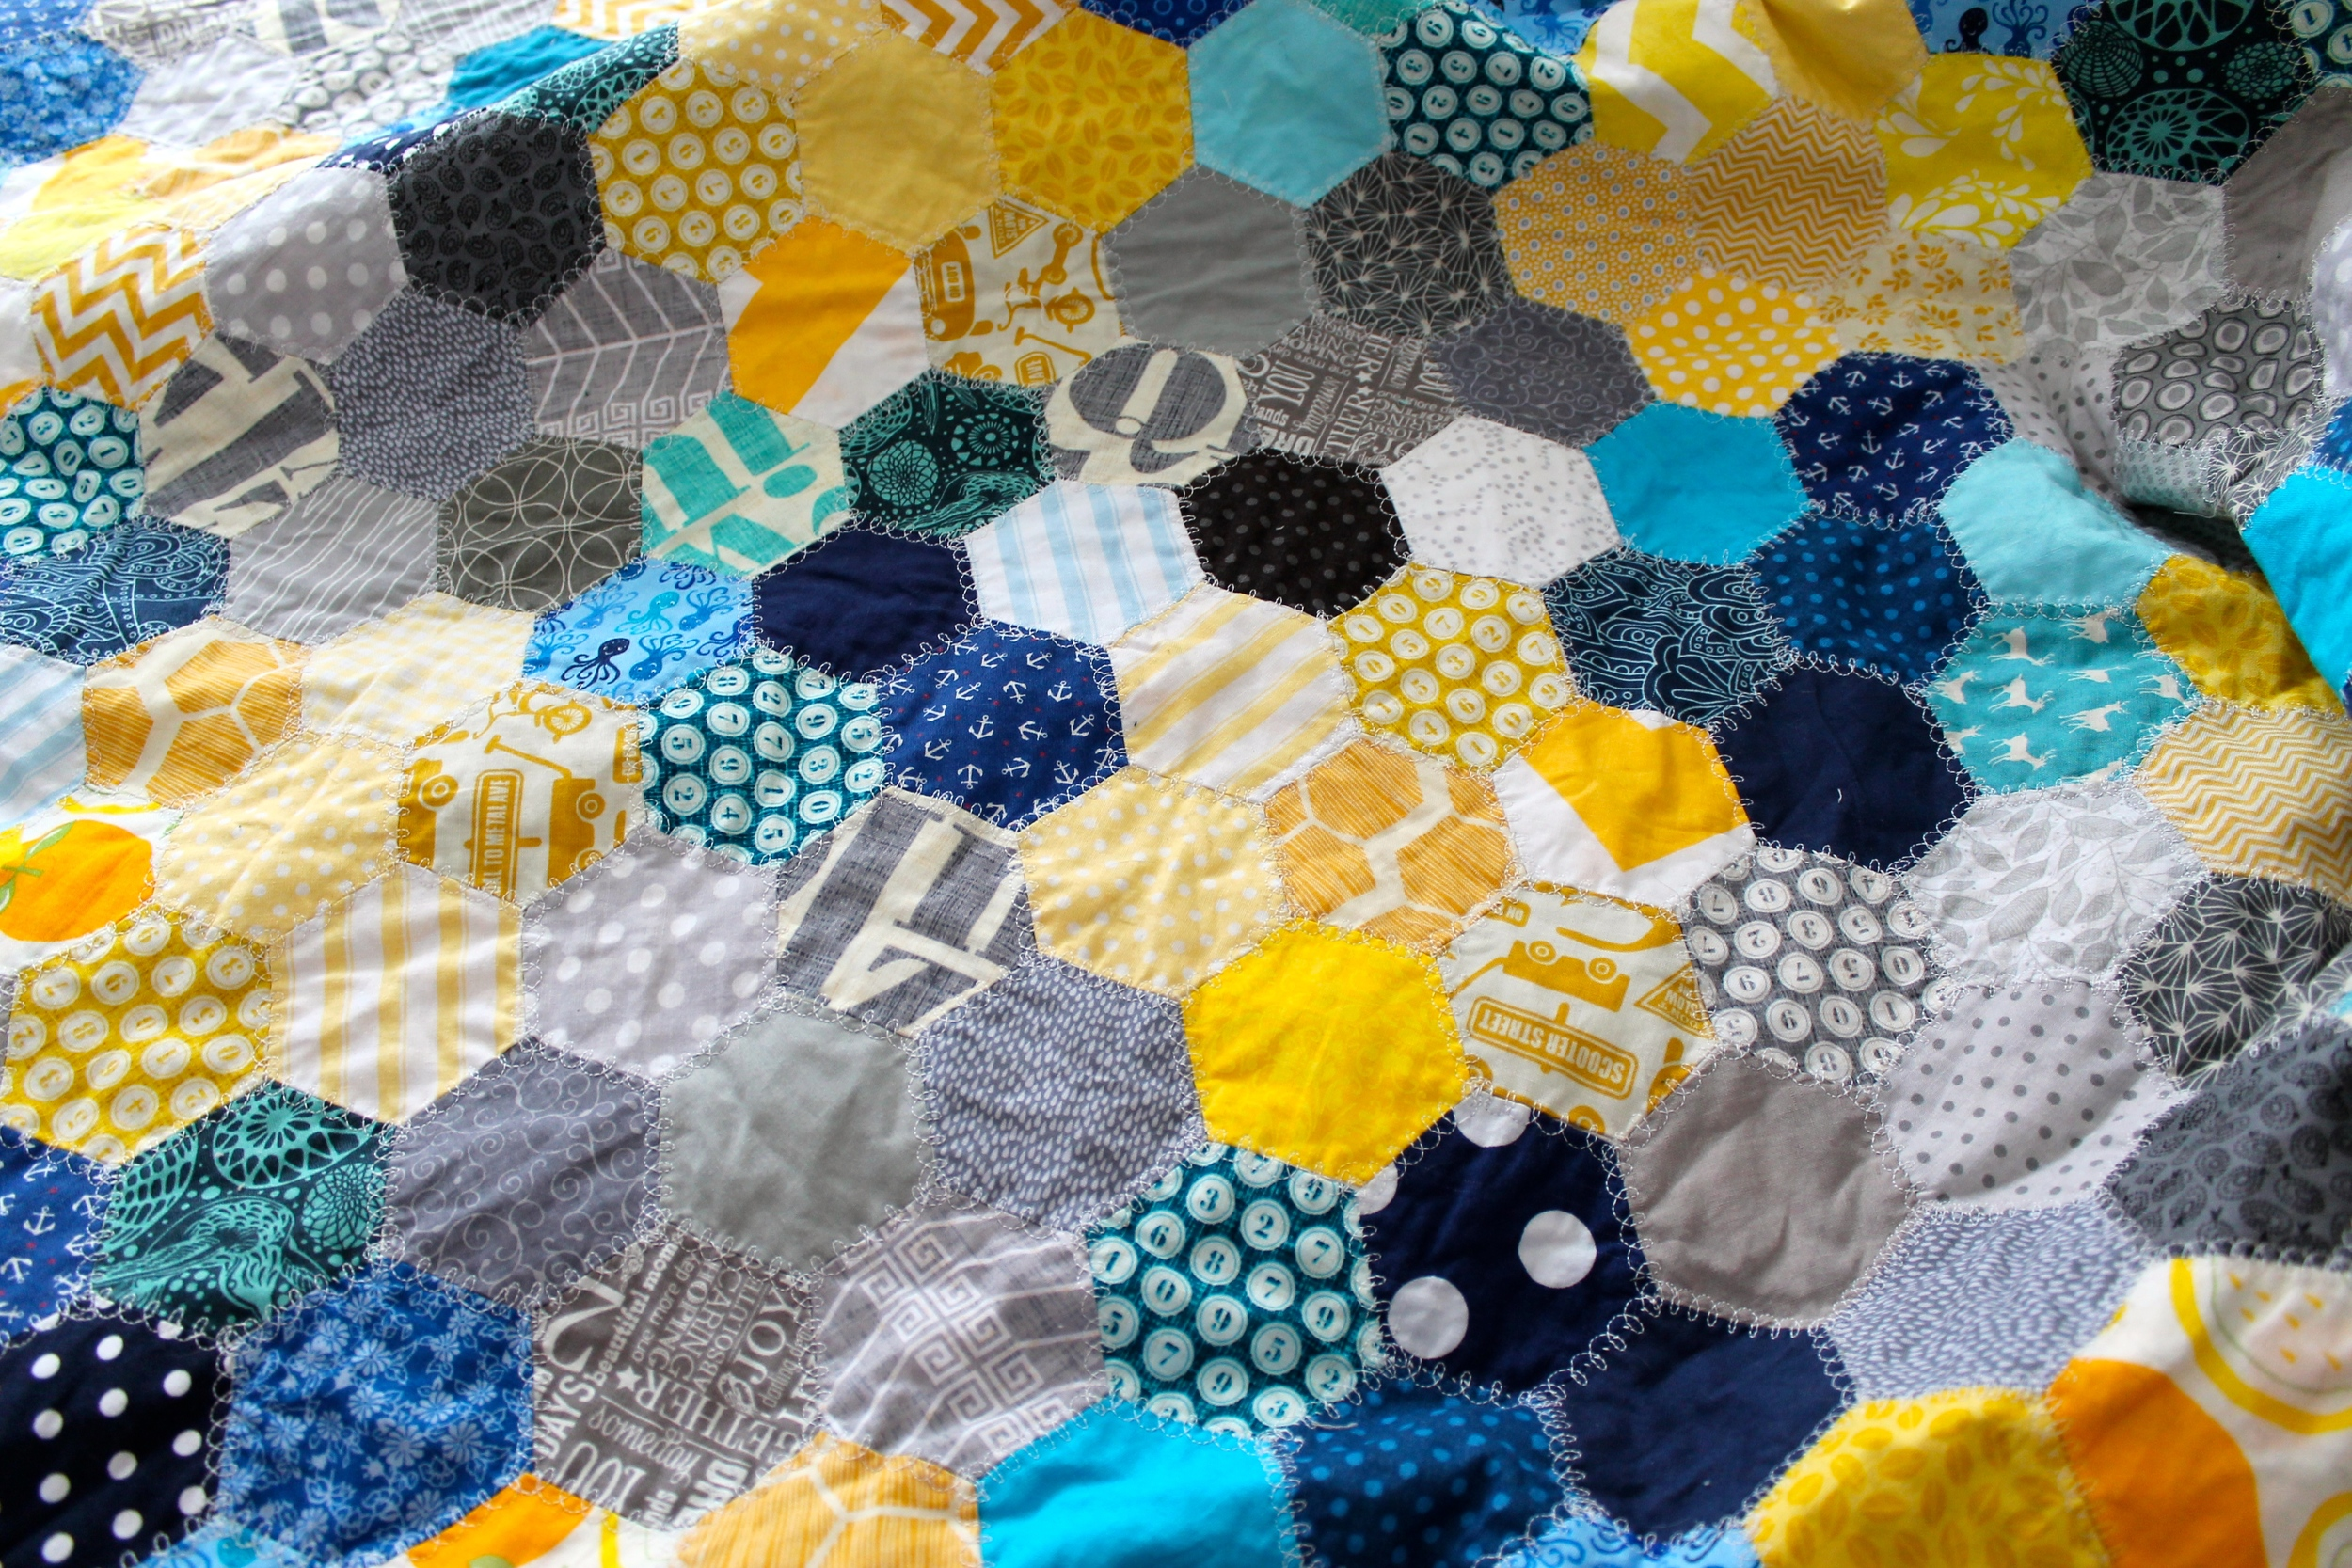 Close up of queen sized hand pieced quilt made with blue, gray, and yellow hexagons